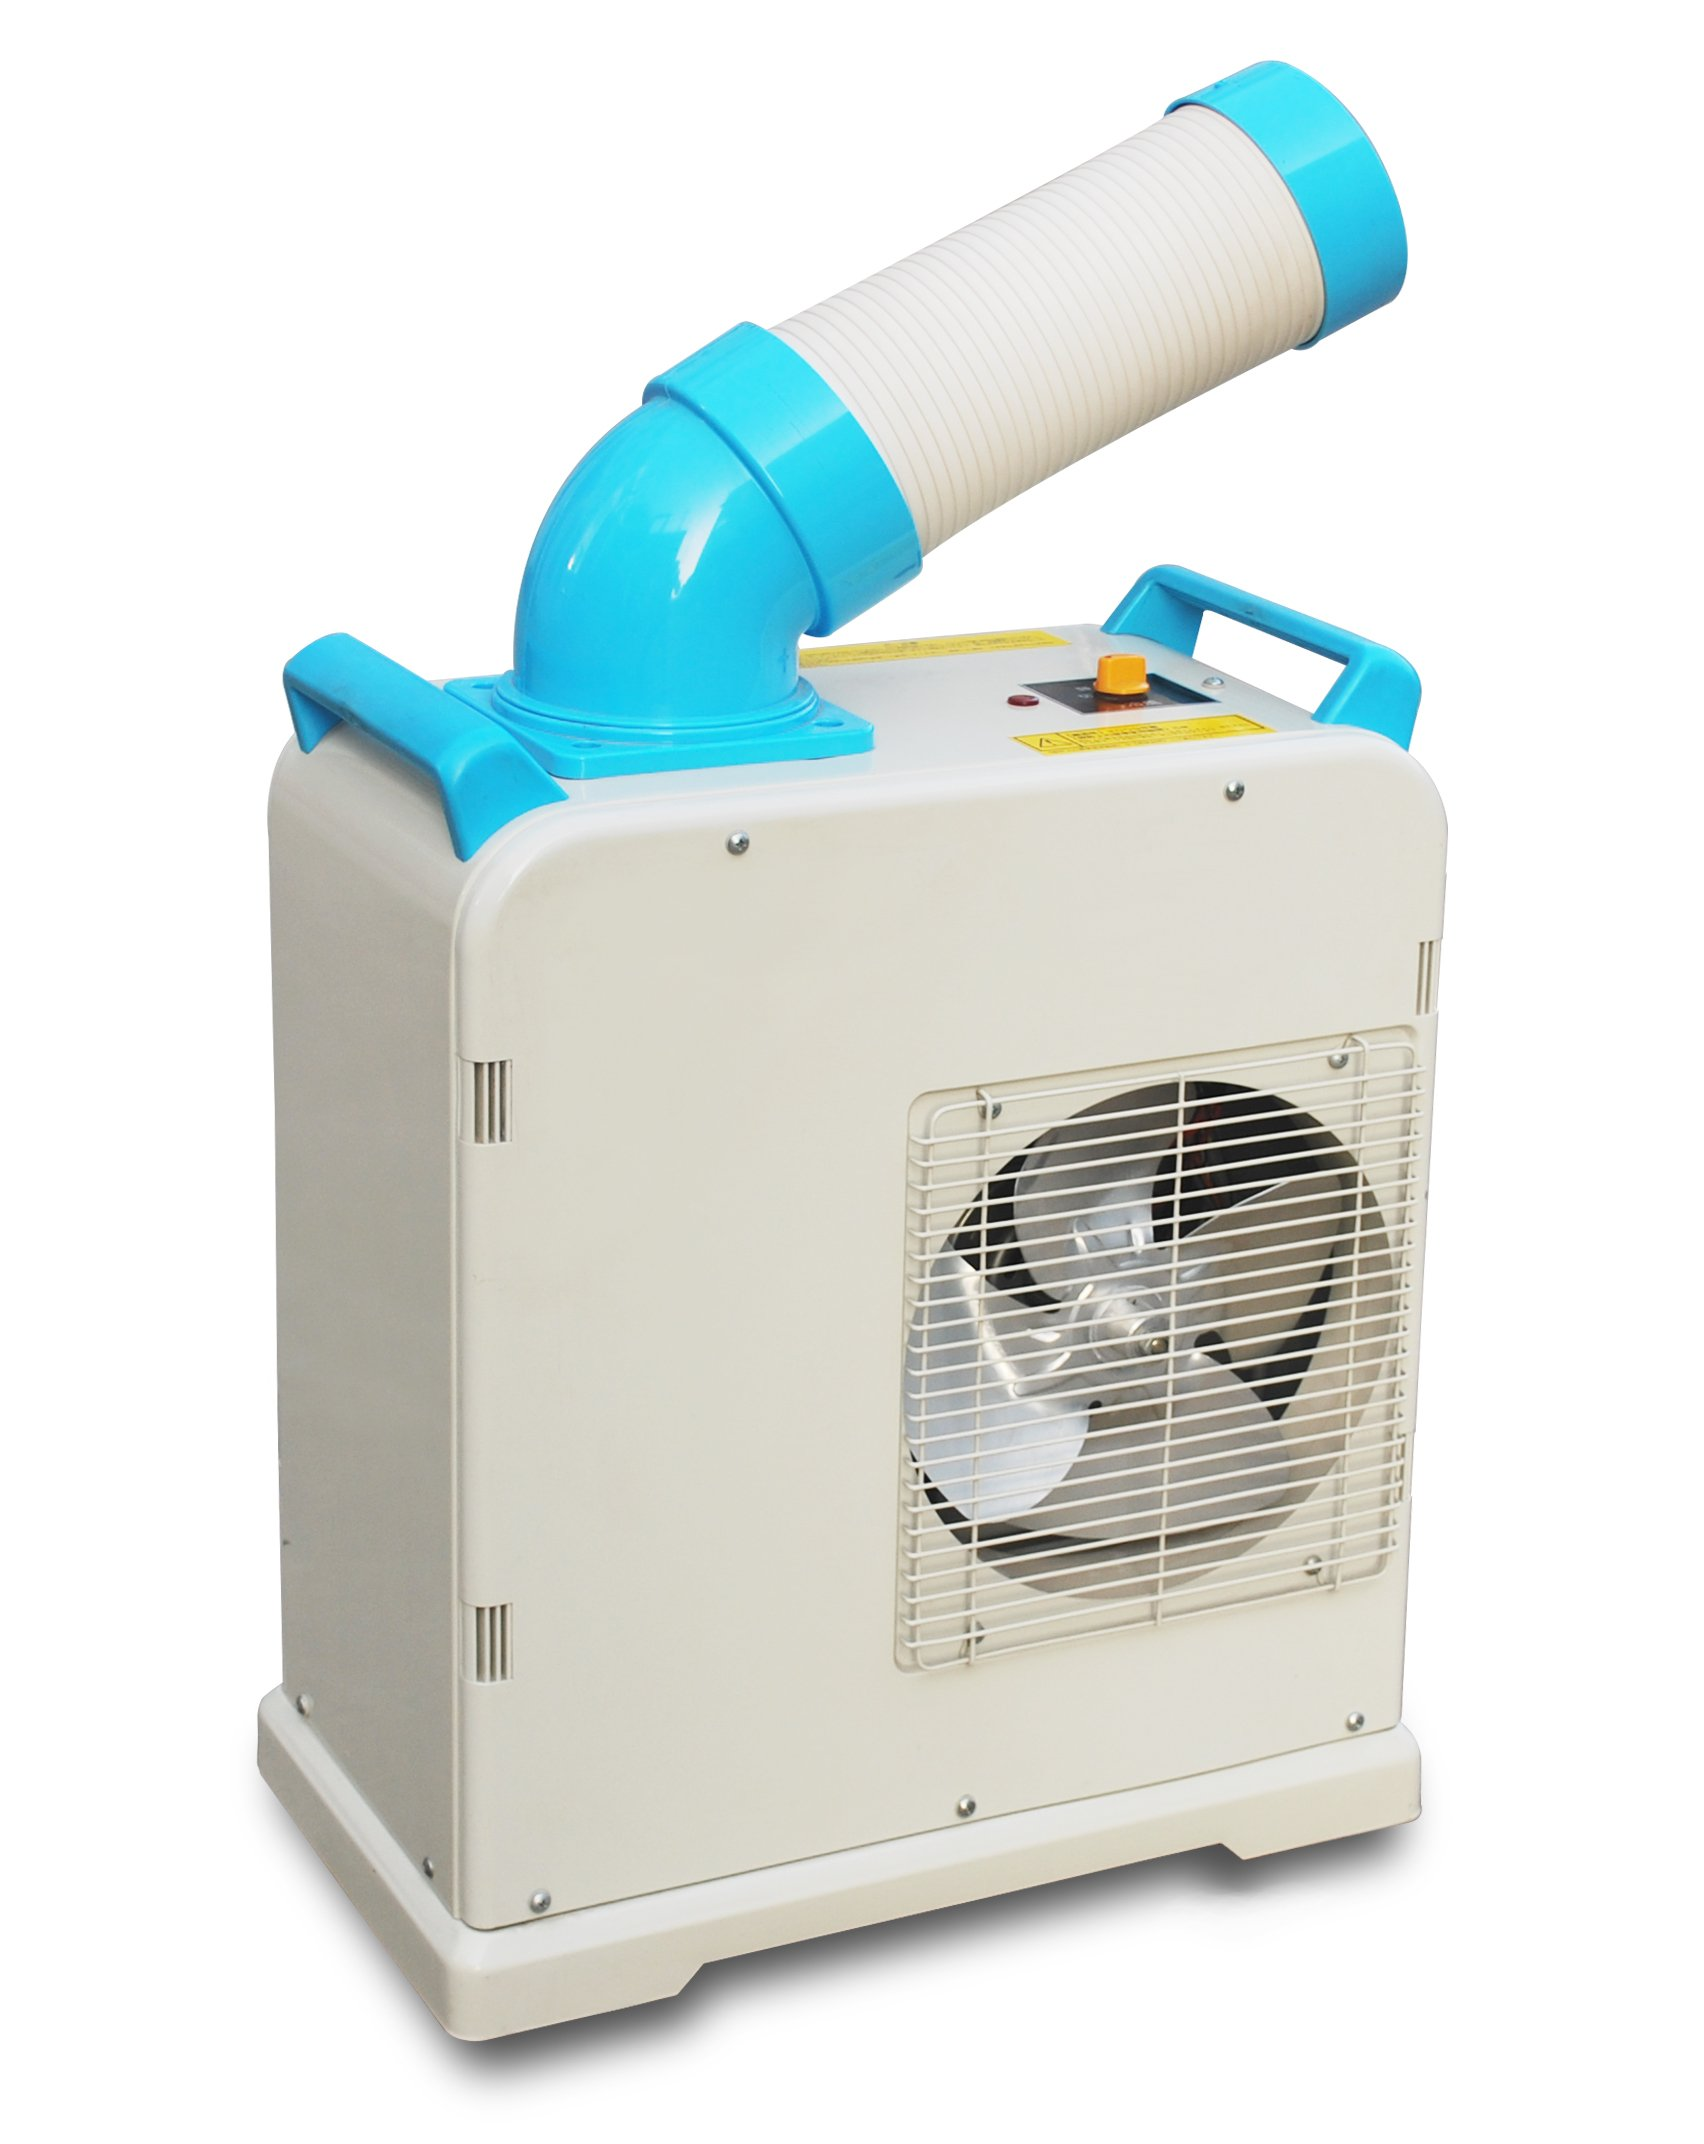 TurquoPower PAC6000 Industrial Class Portable Spot Air Conditioner with Top Evaporator, 6130 Btu/h Cooling Capacity, 115V, 1 Phase